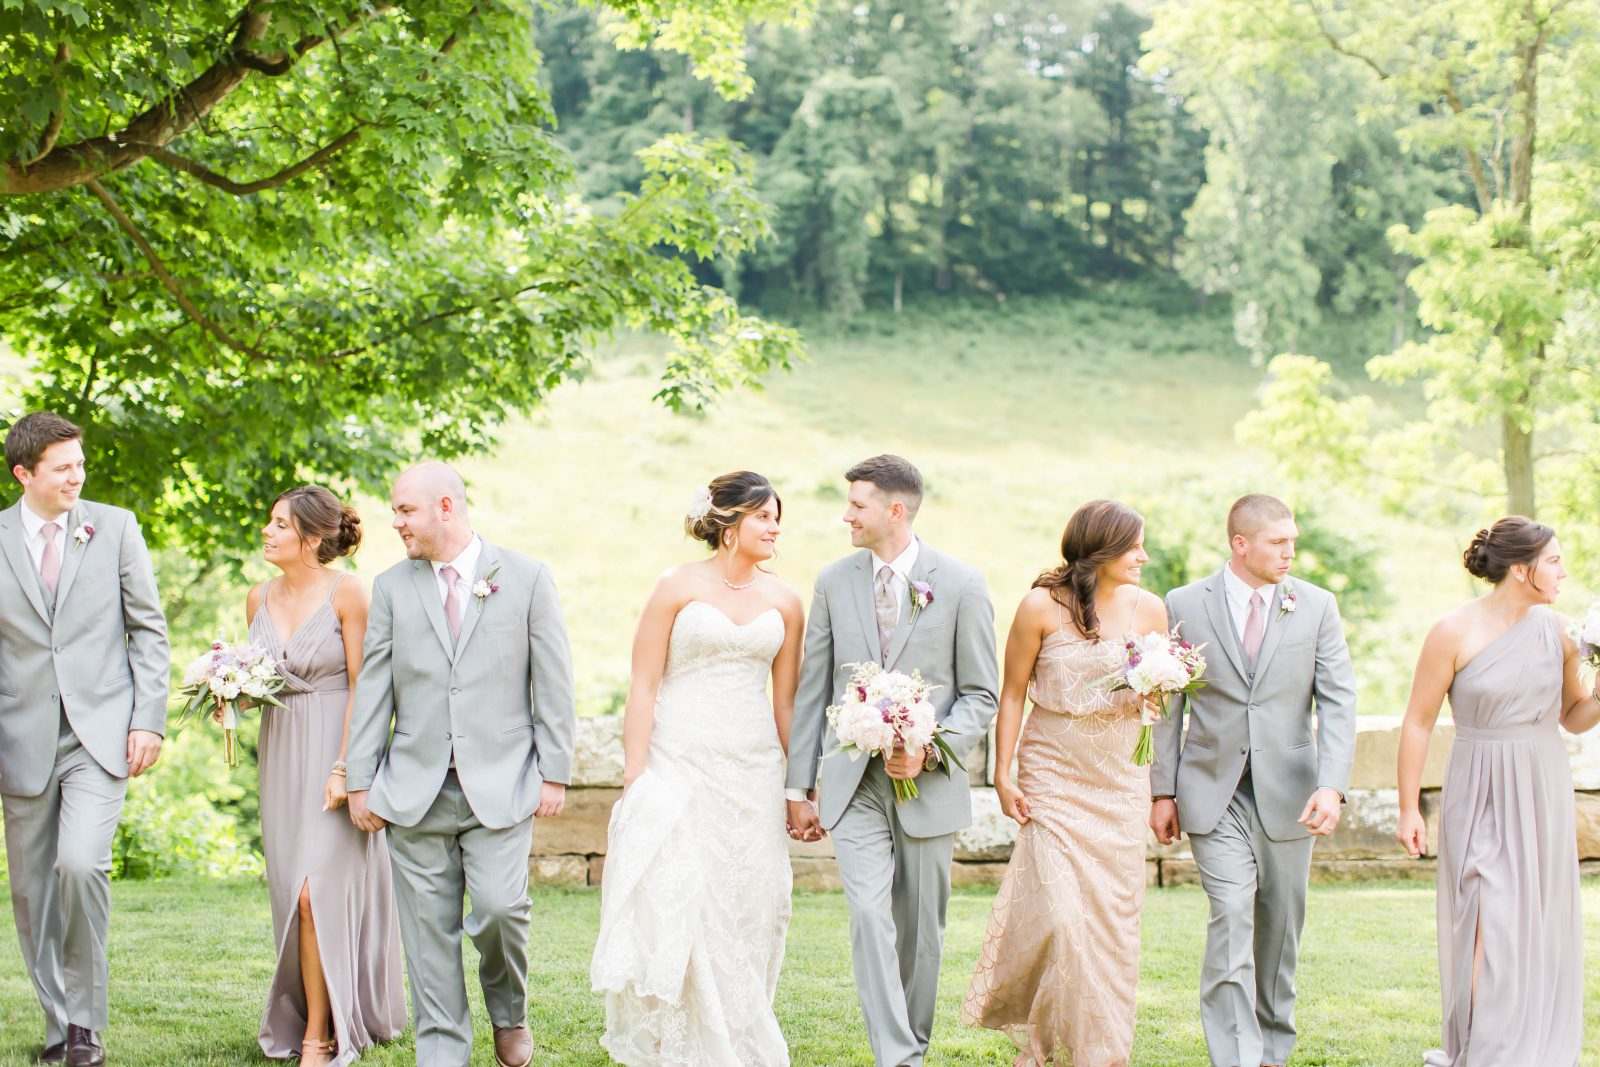 rivercrest-farm-summer-wedding-loren-jackson-photography-58